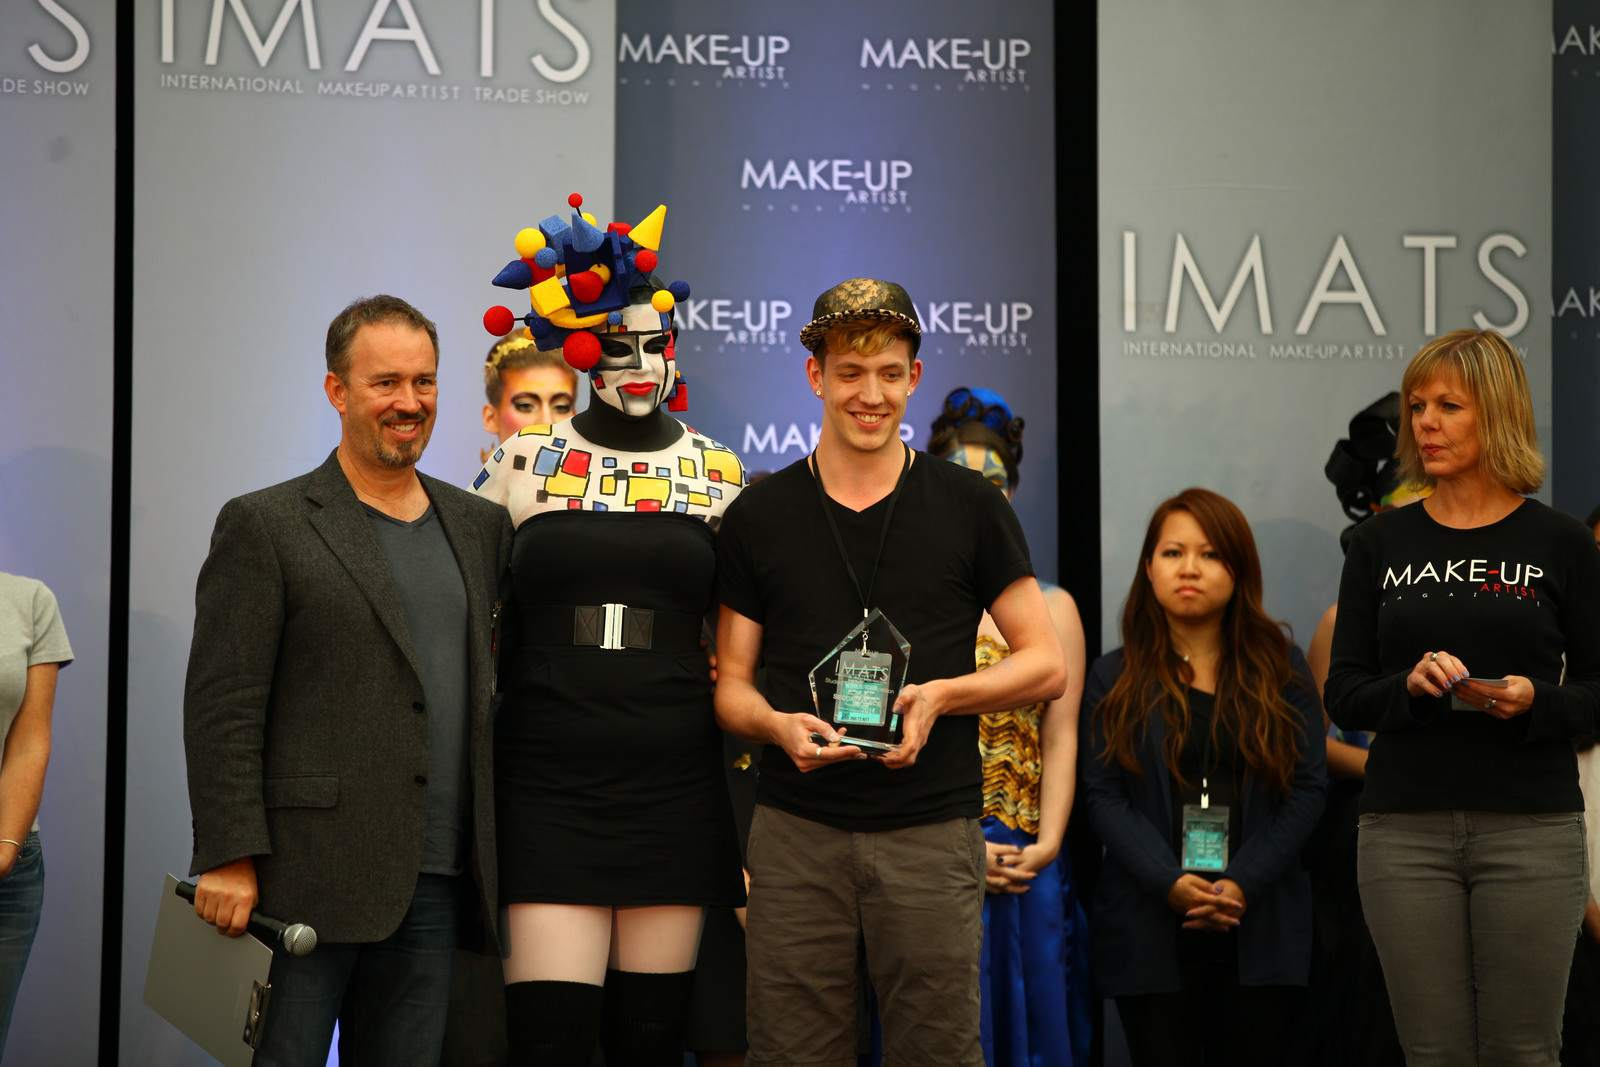 make up8 The International Make Up Artist Trade Show 2014, Vancouver